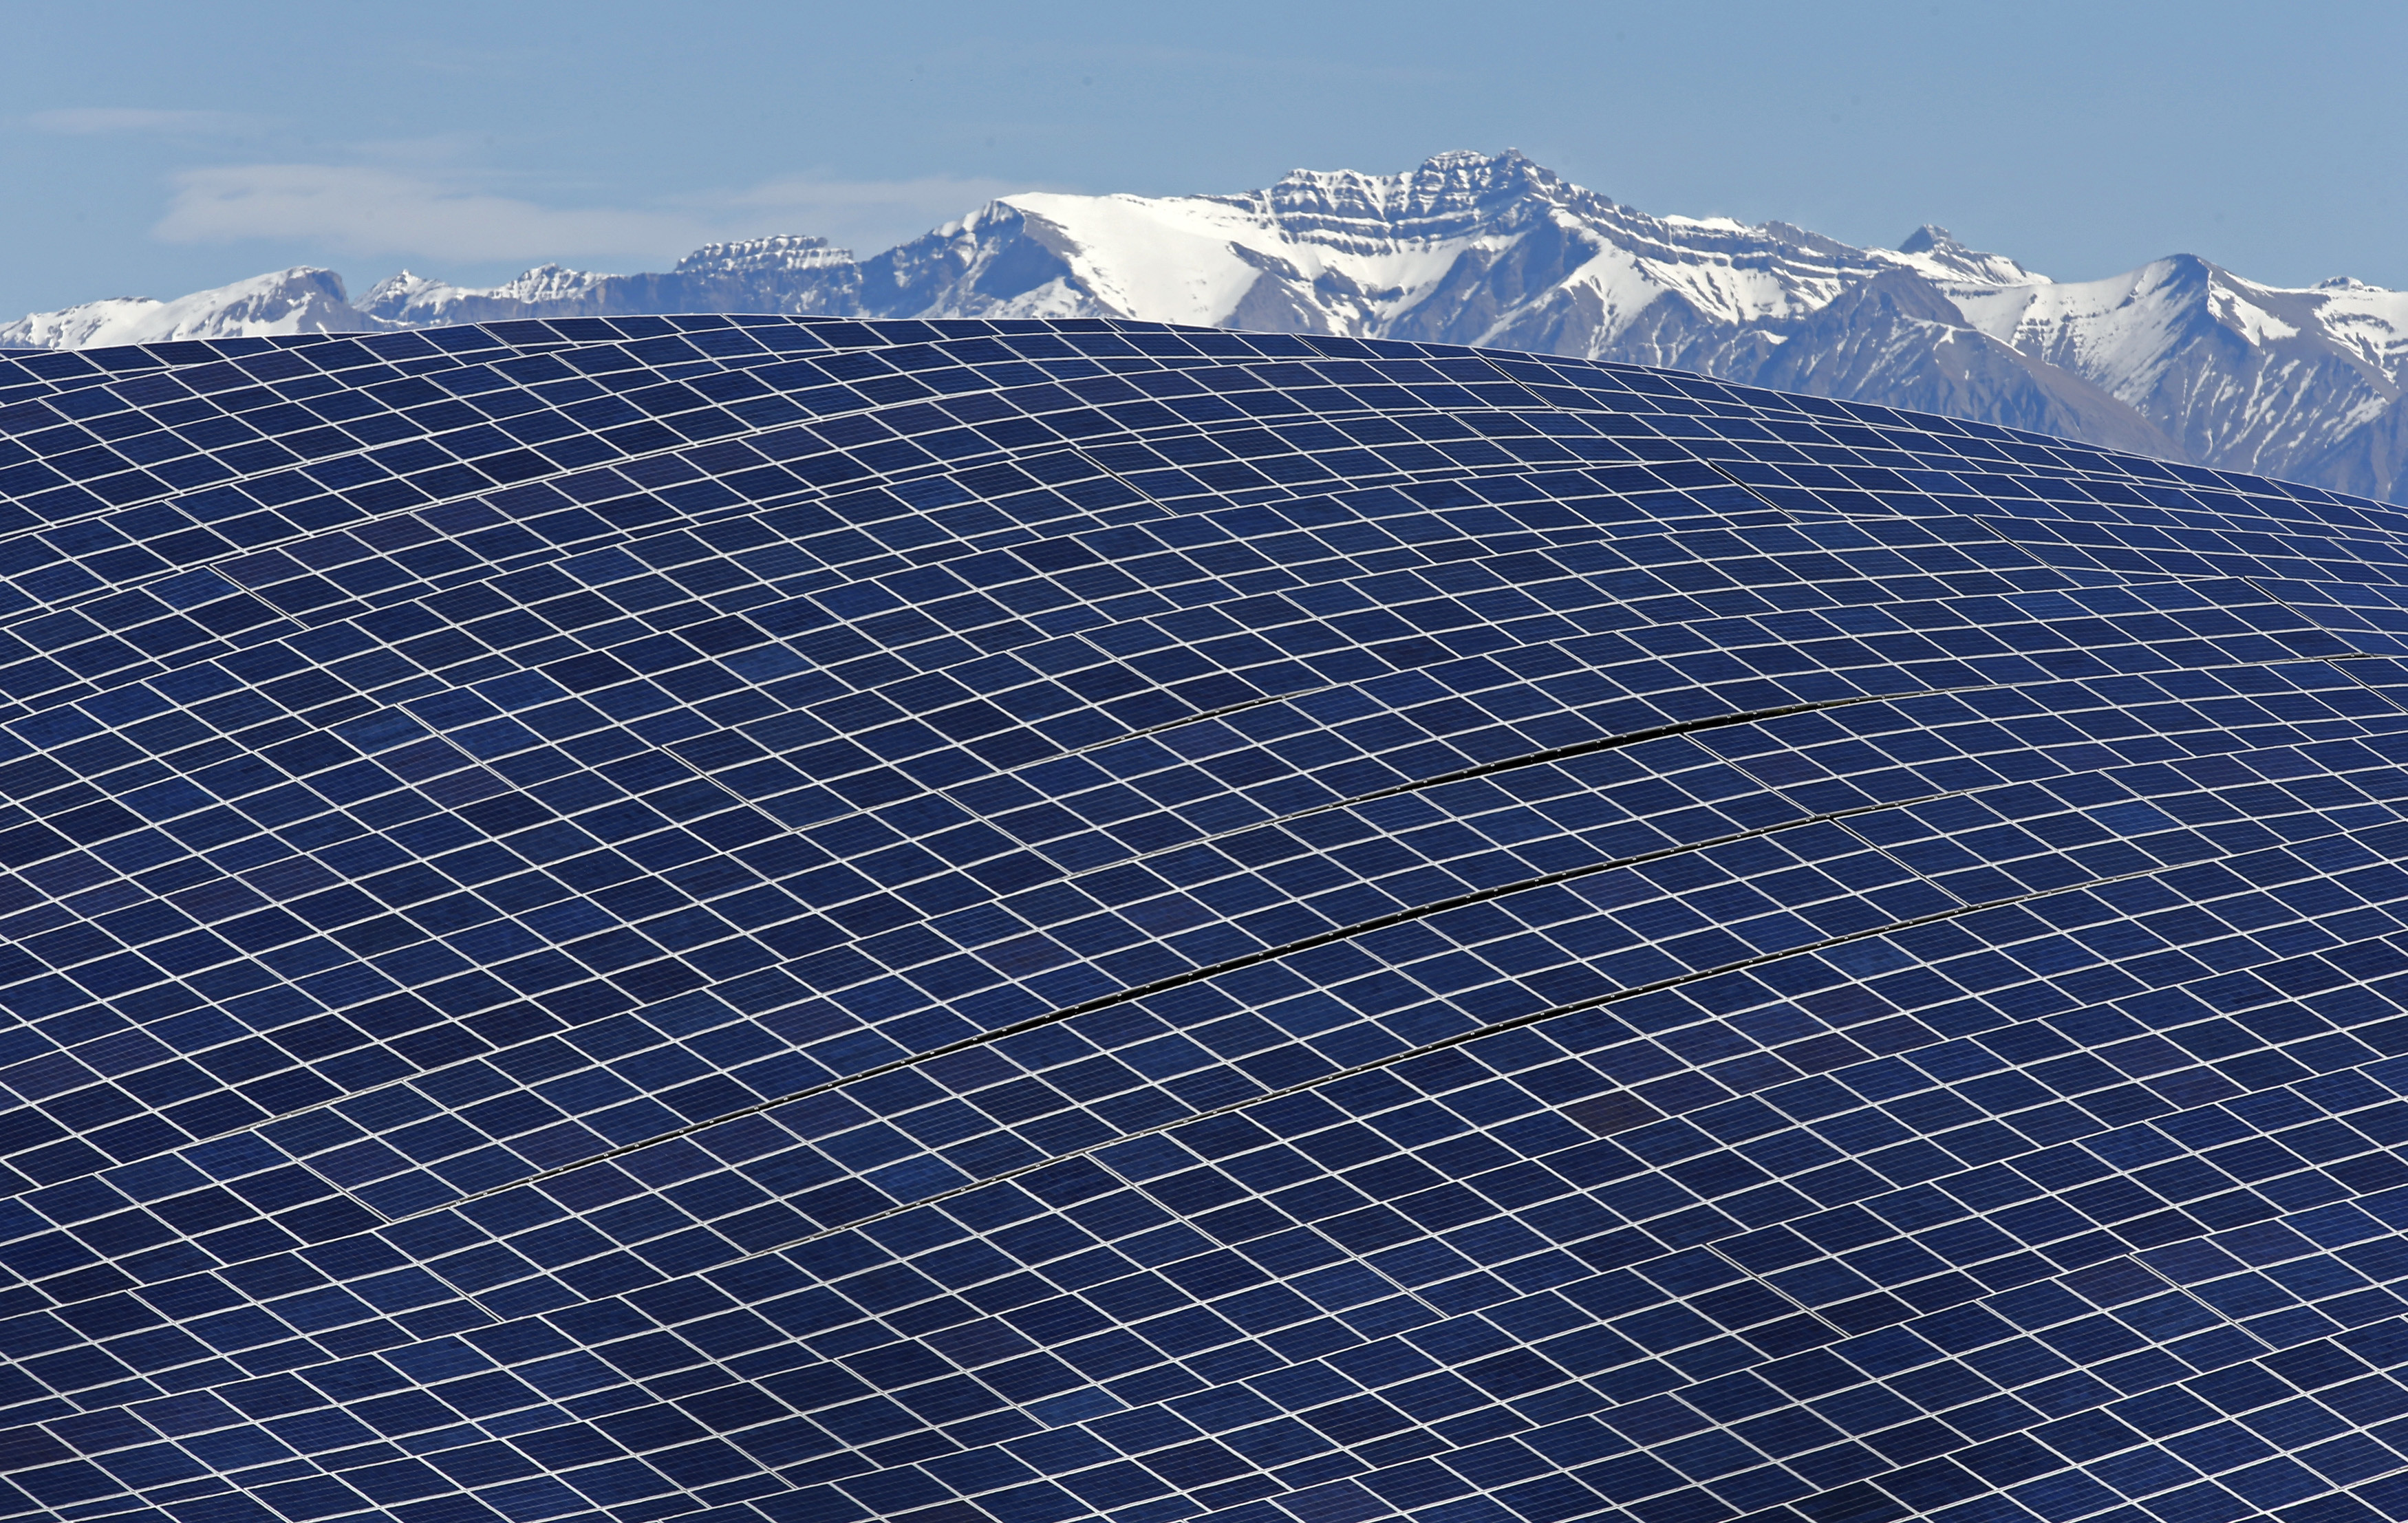 A general view shows solar panels to produce renewable energy at the photovoltaic park in Les Mees, in the department of Alpes-de-Haute-Provence, southern France March 31, 2015. The solar farm of the Colle des Mees, the biggest in France, consists of 112,780 solar modules covering an area of 200 hectares of land and representing 100 MW of power